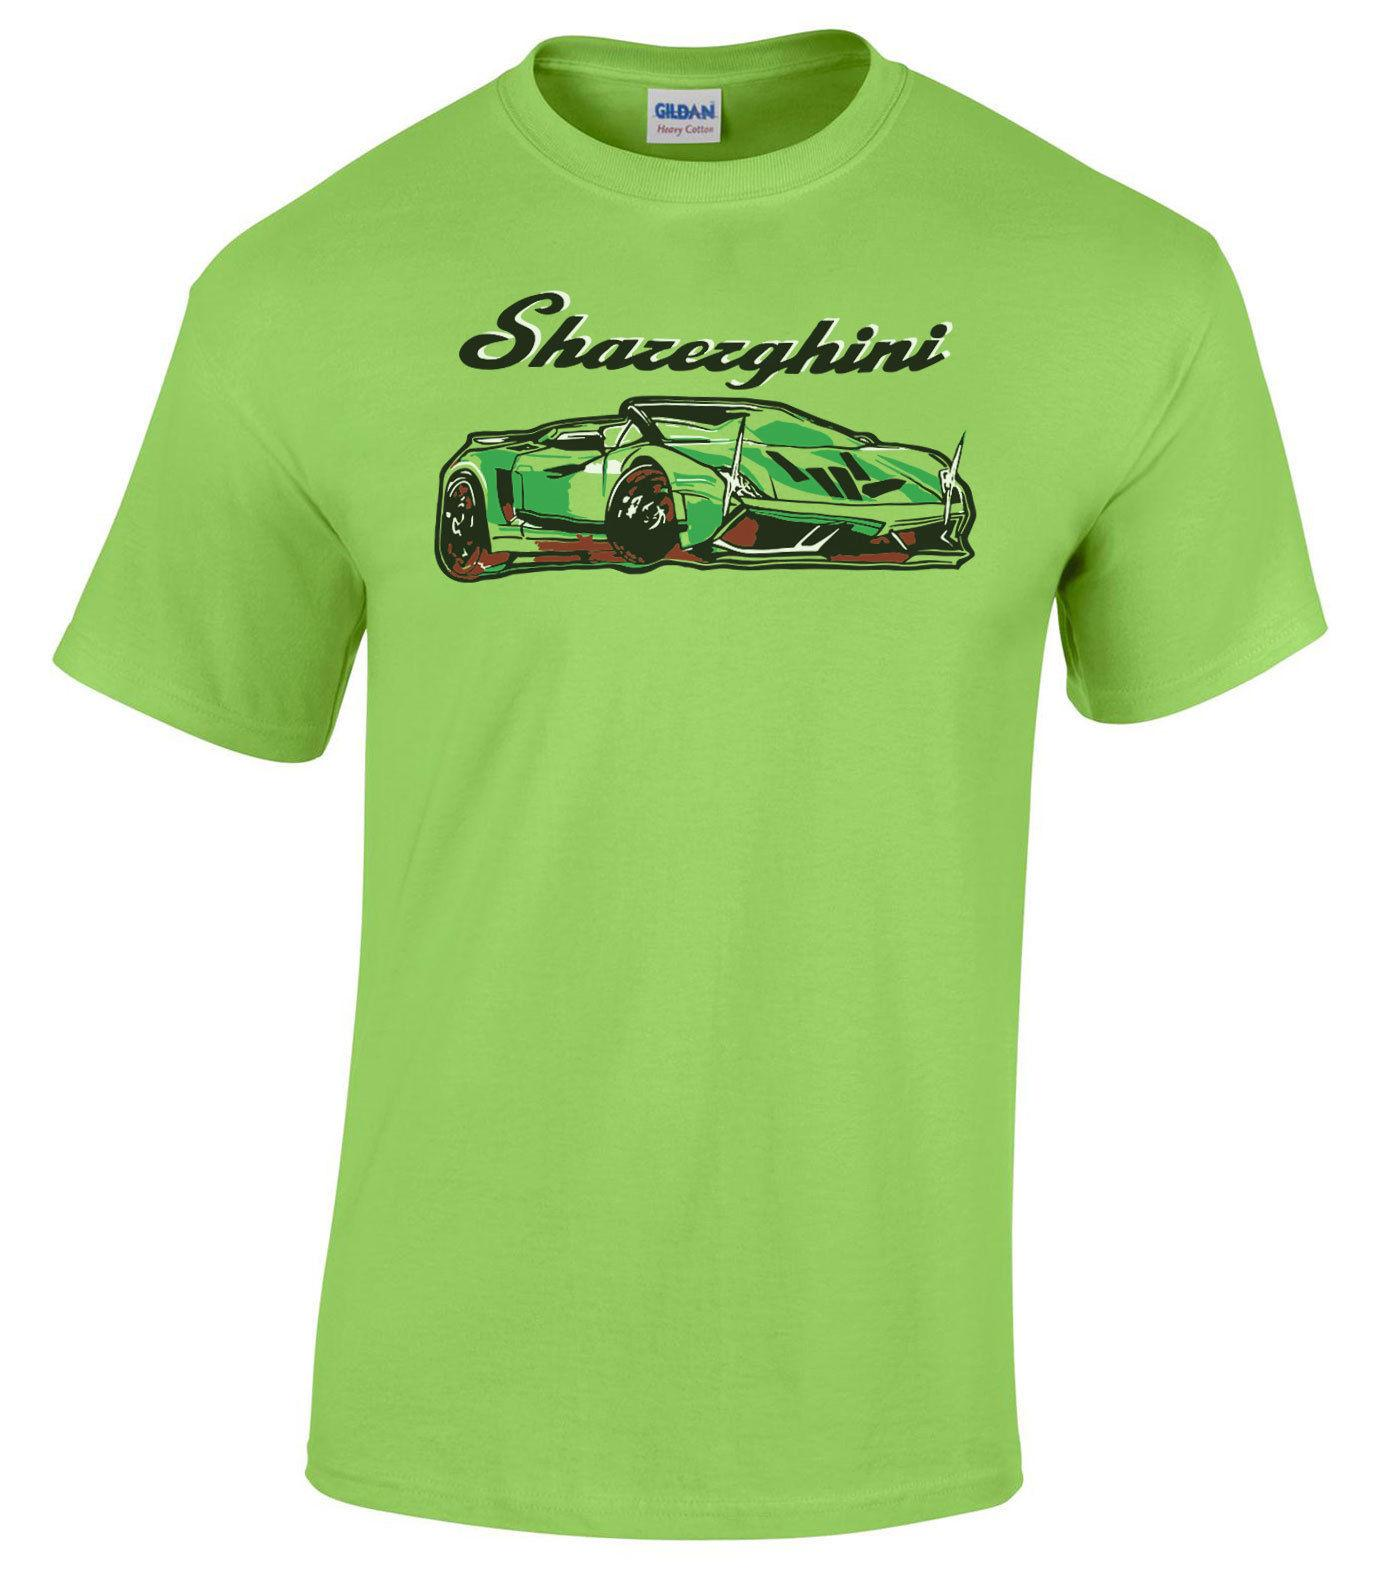 ddb5d2ef8 Sharerghini T Shirt Share The Love T Shirts You Tube Trending Tee Funny  Unisex Casual Tshirt Top Tees Design T Shirt Of The Day From  Workwearnationcom, ...